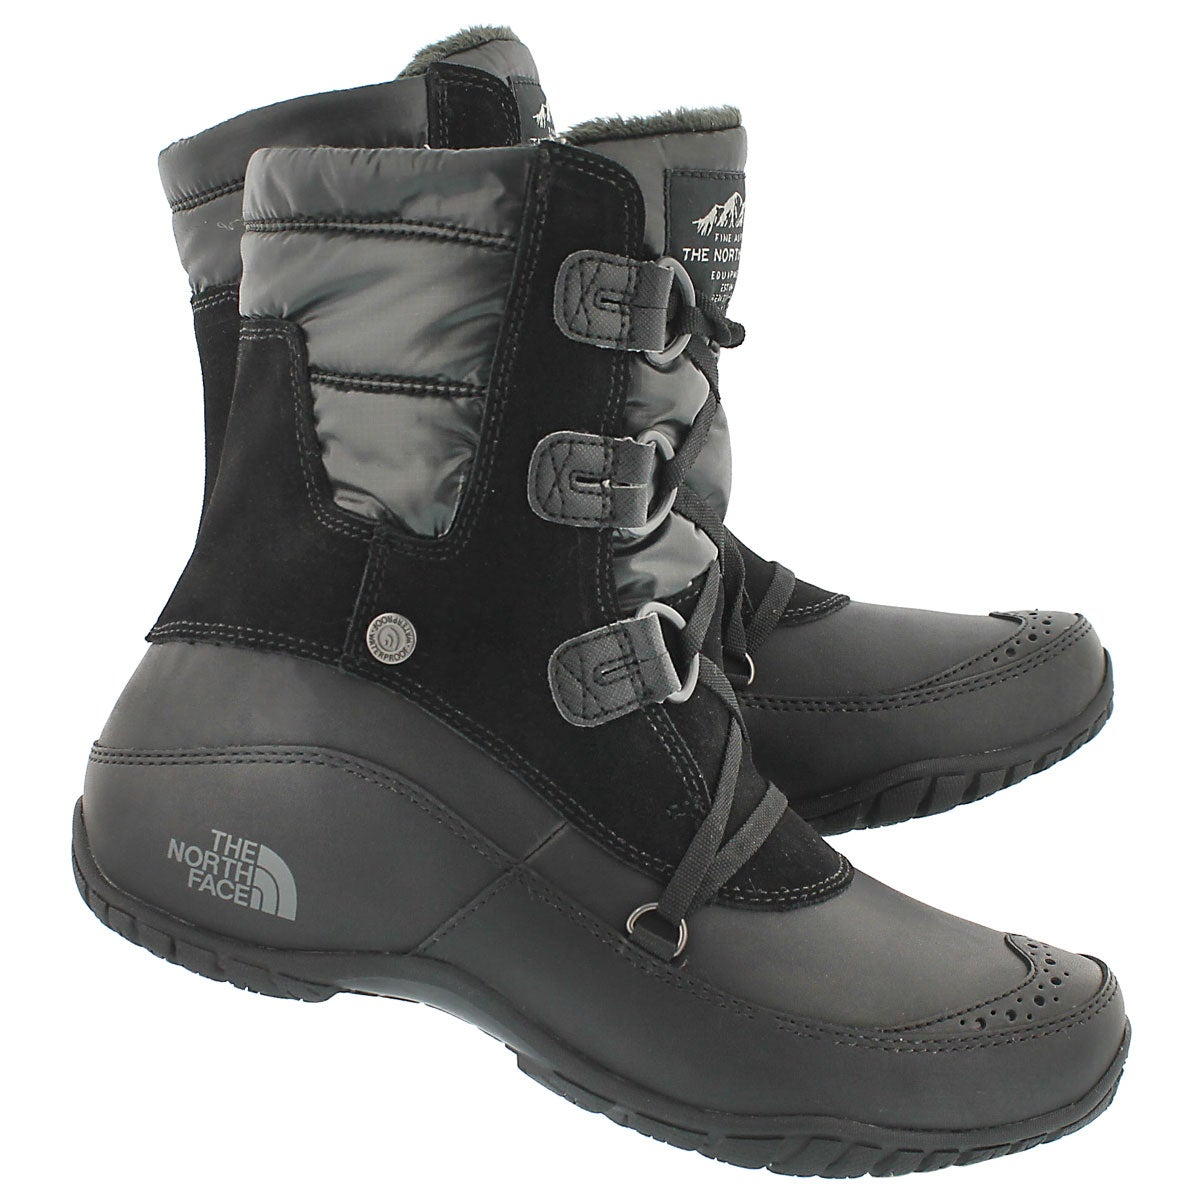 Lds Nuptse Purna Short blk/gry wntr boot